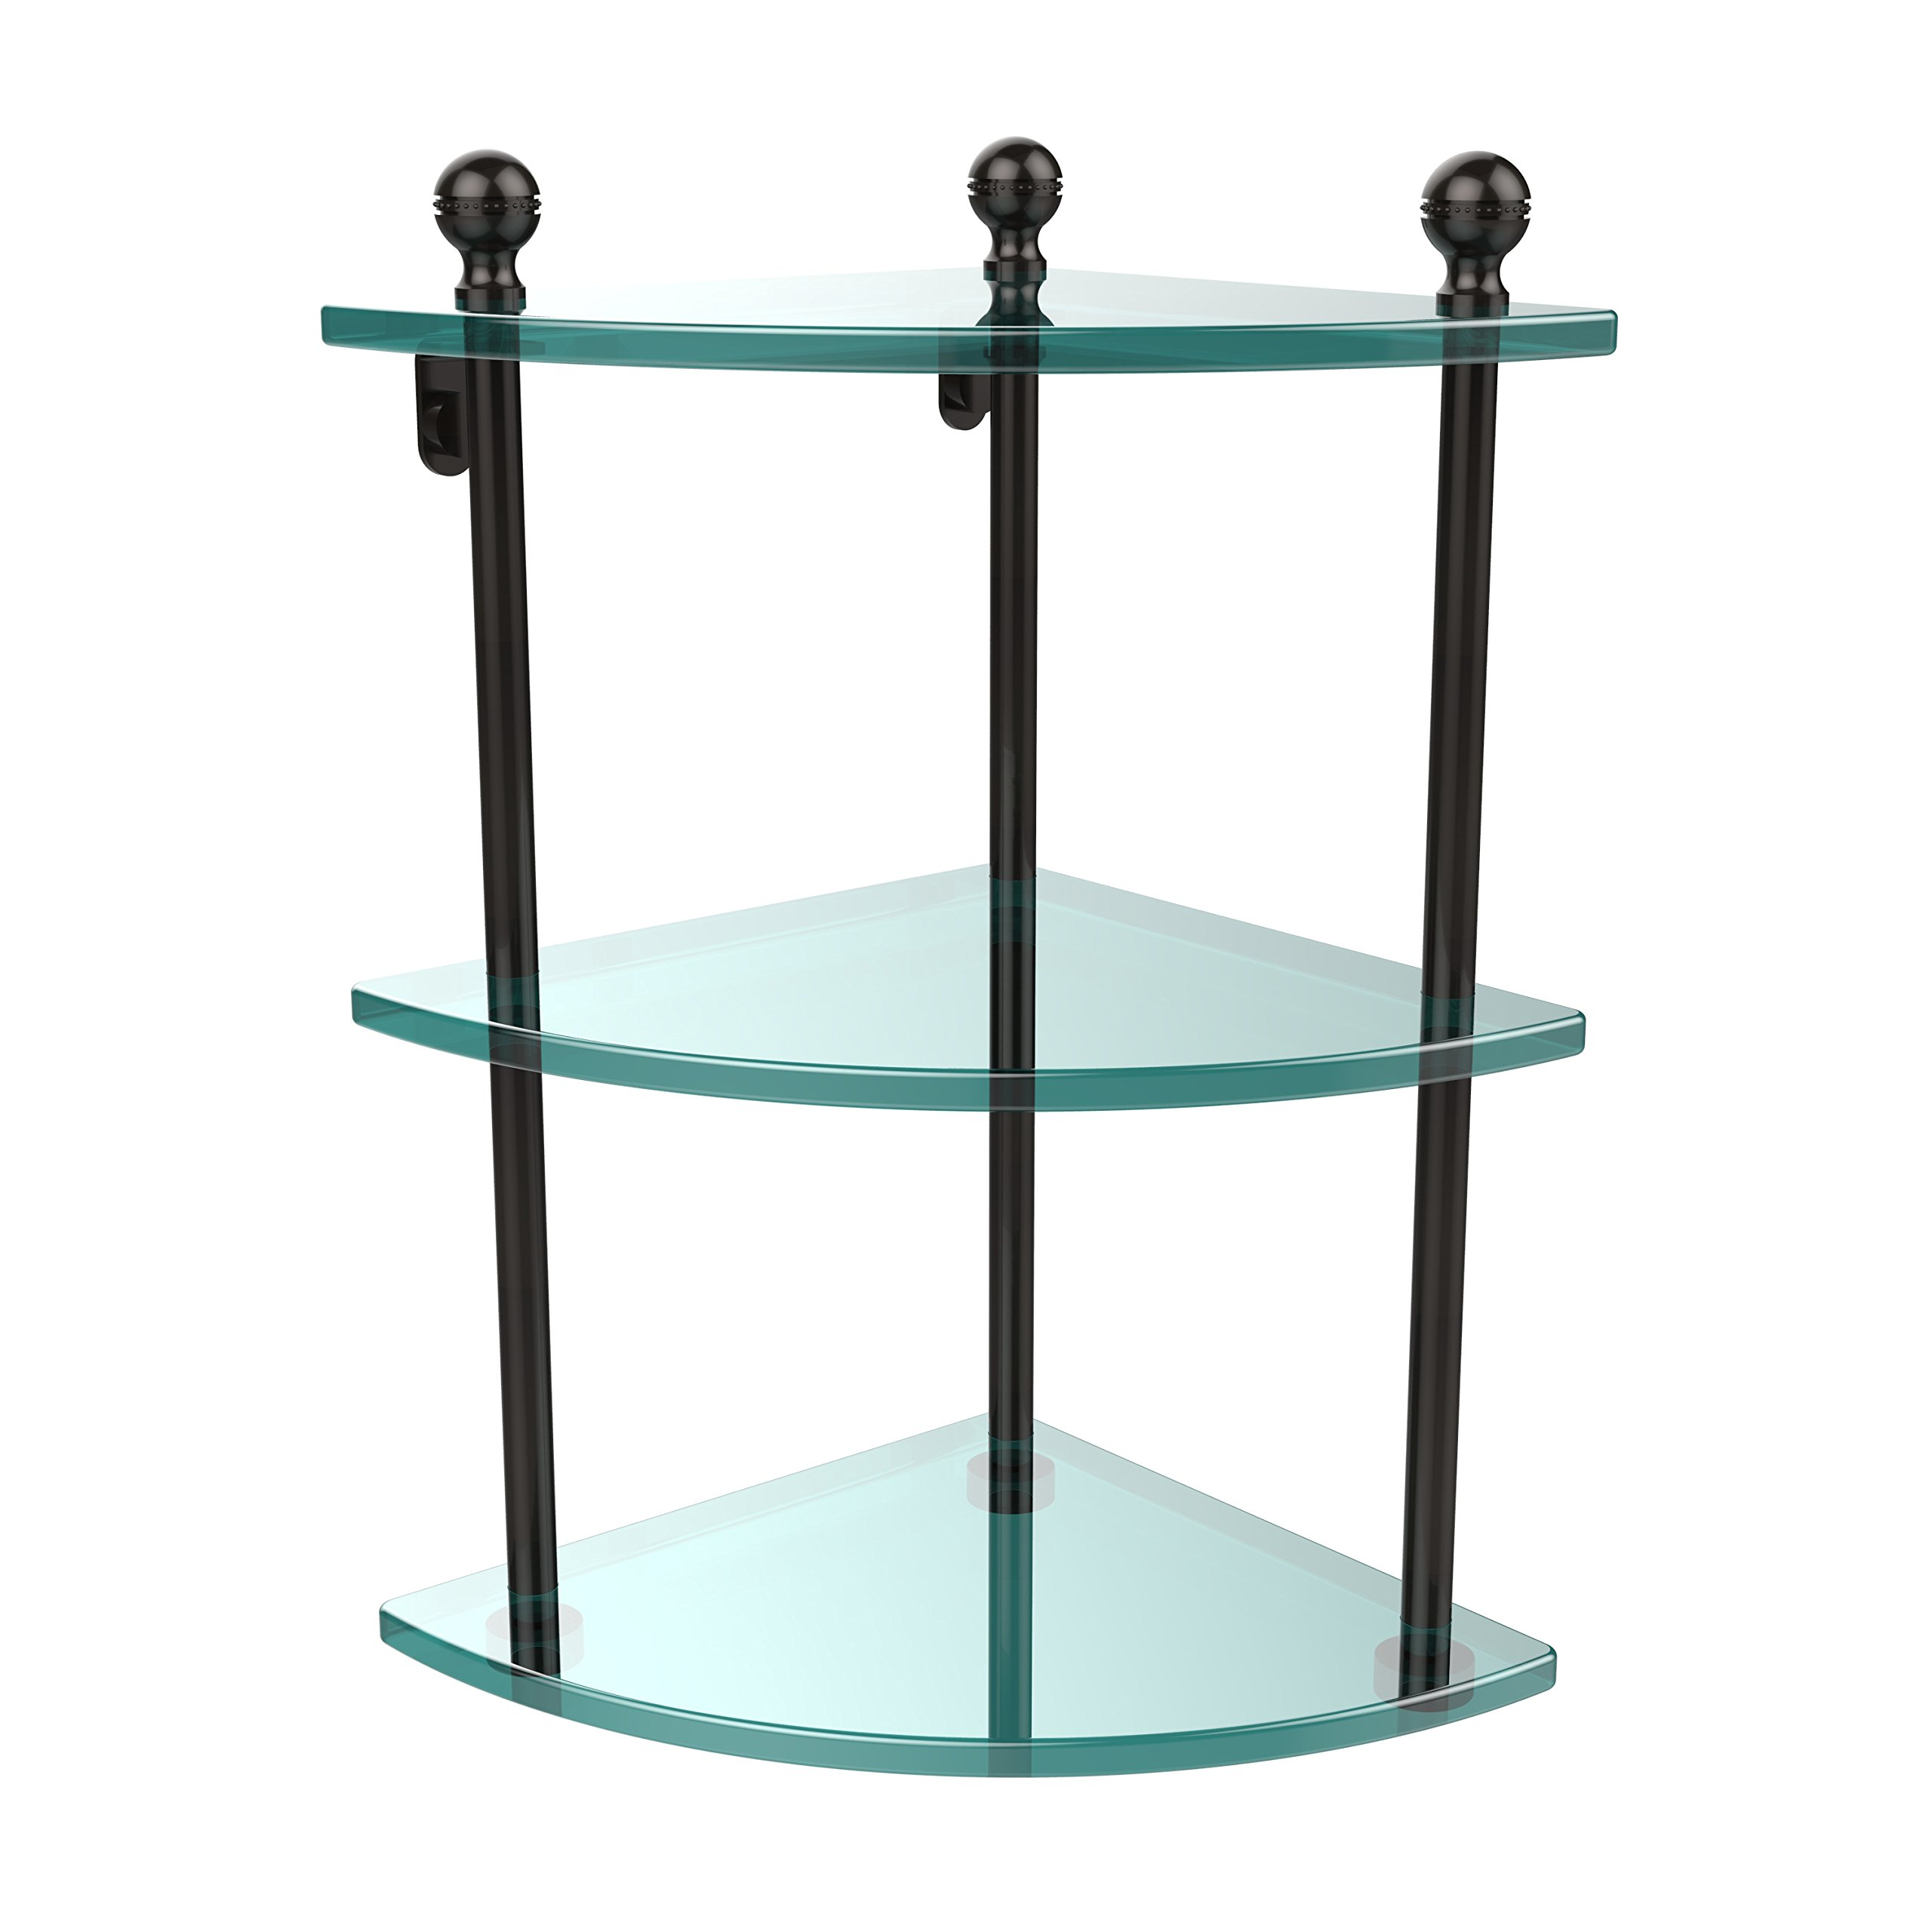 Allied Brass MA-6-ORB Triple Corner Glass Shelf Oil Rubbed Bronze by Allied Brass